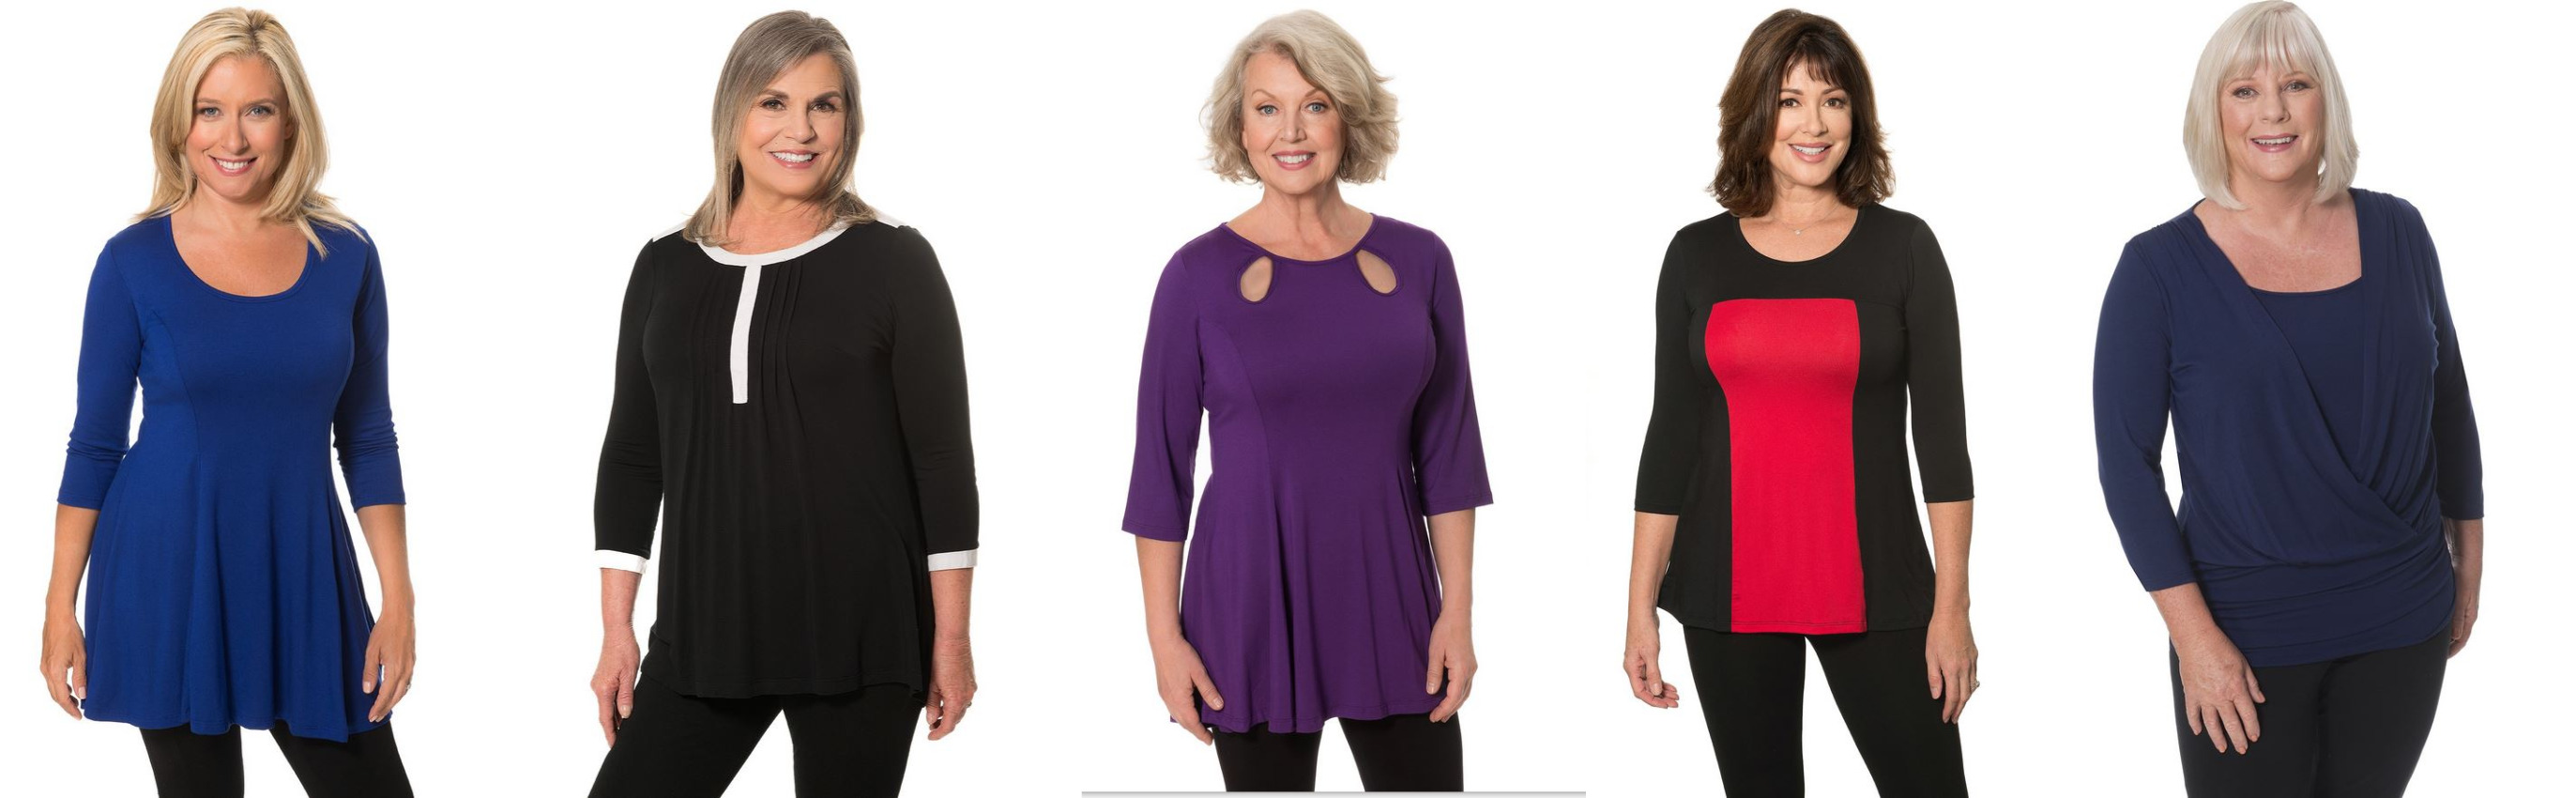 ff1bc7f50ce8 Covered Perfectly tops don't cling and hide tummy bulge #covered perfectly # hide